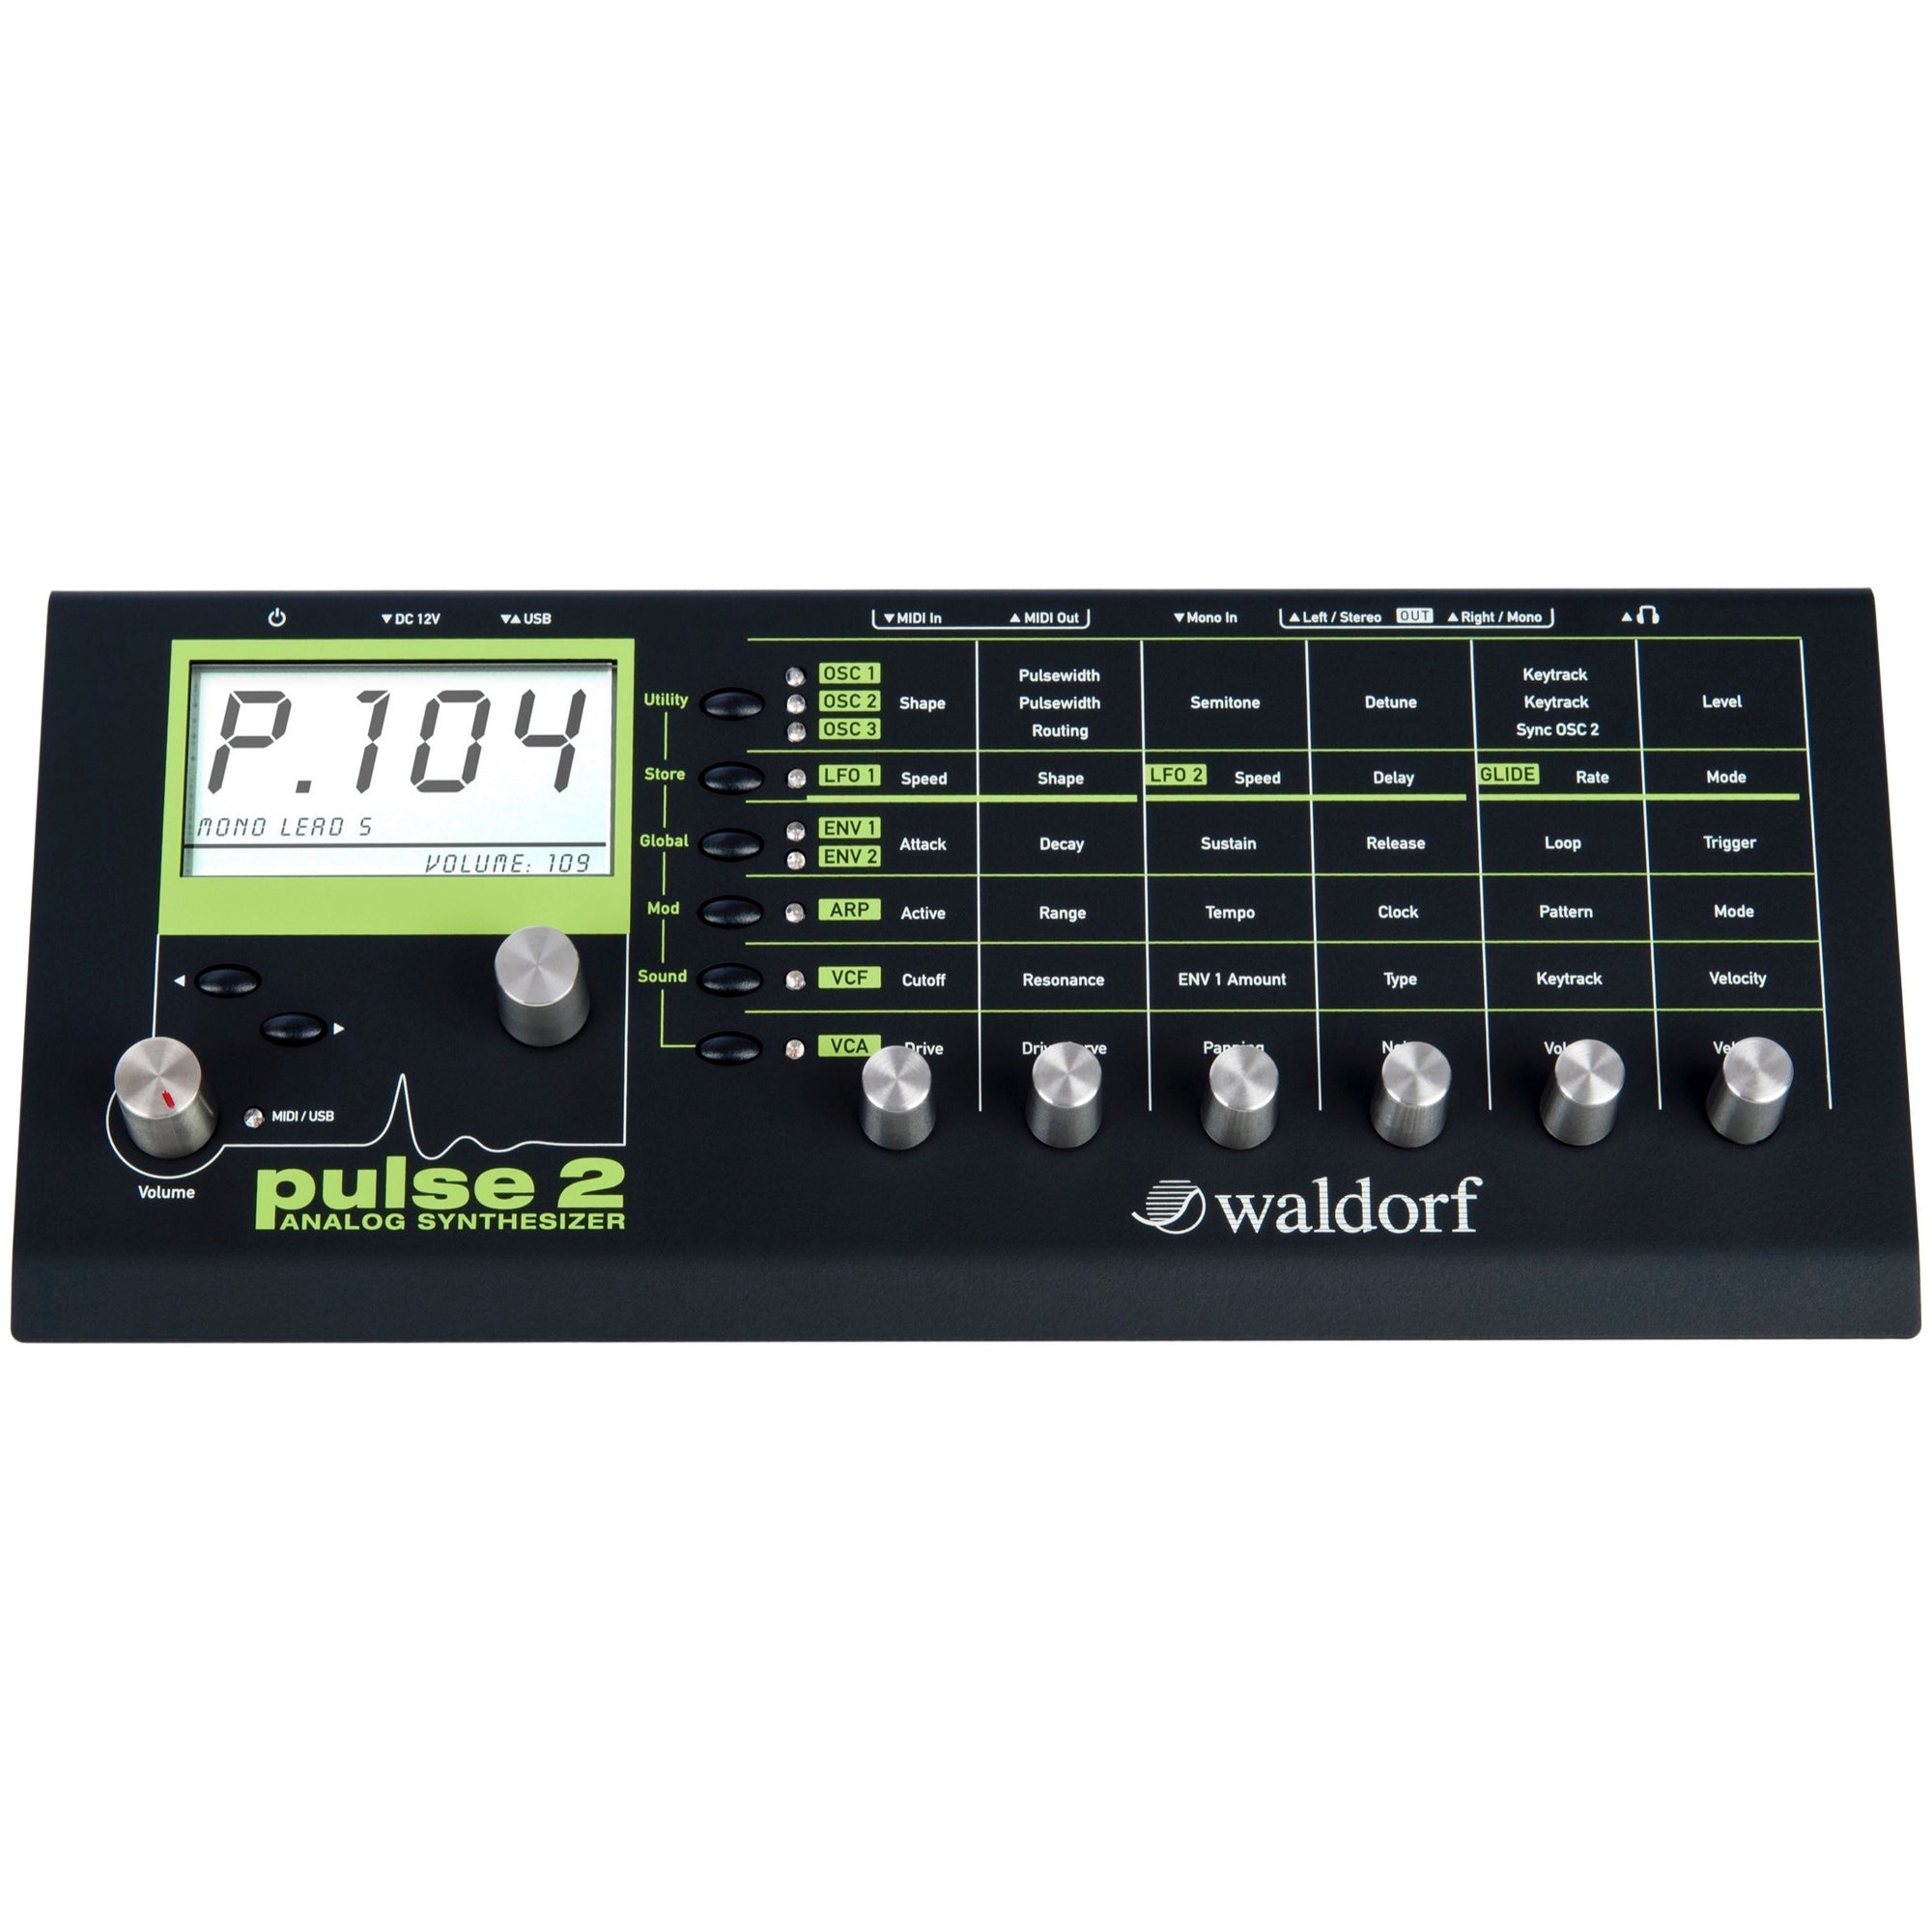 Waldorf Pulse 2 Analog Synthesizer